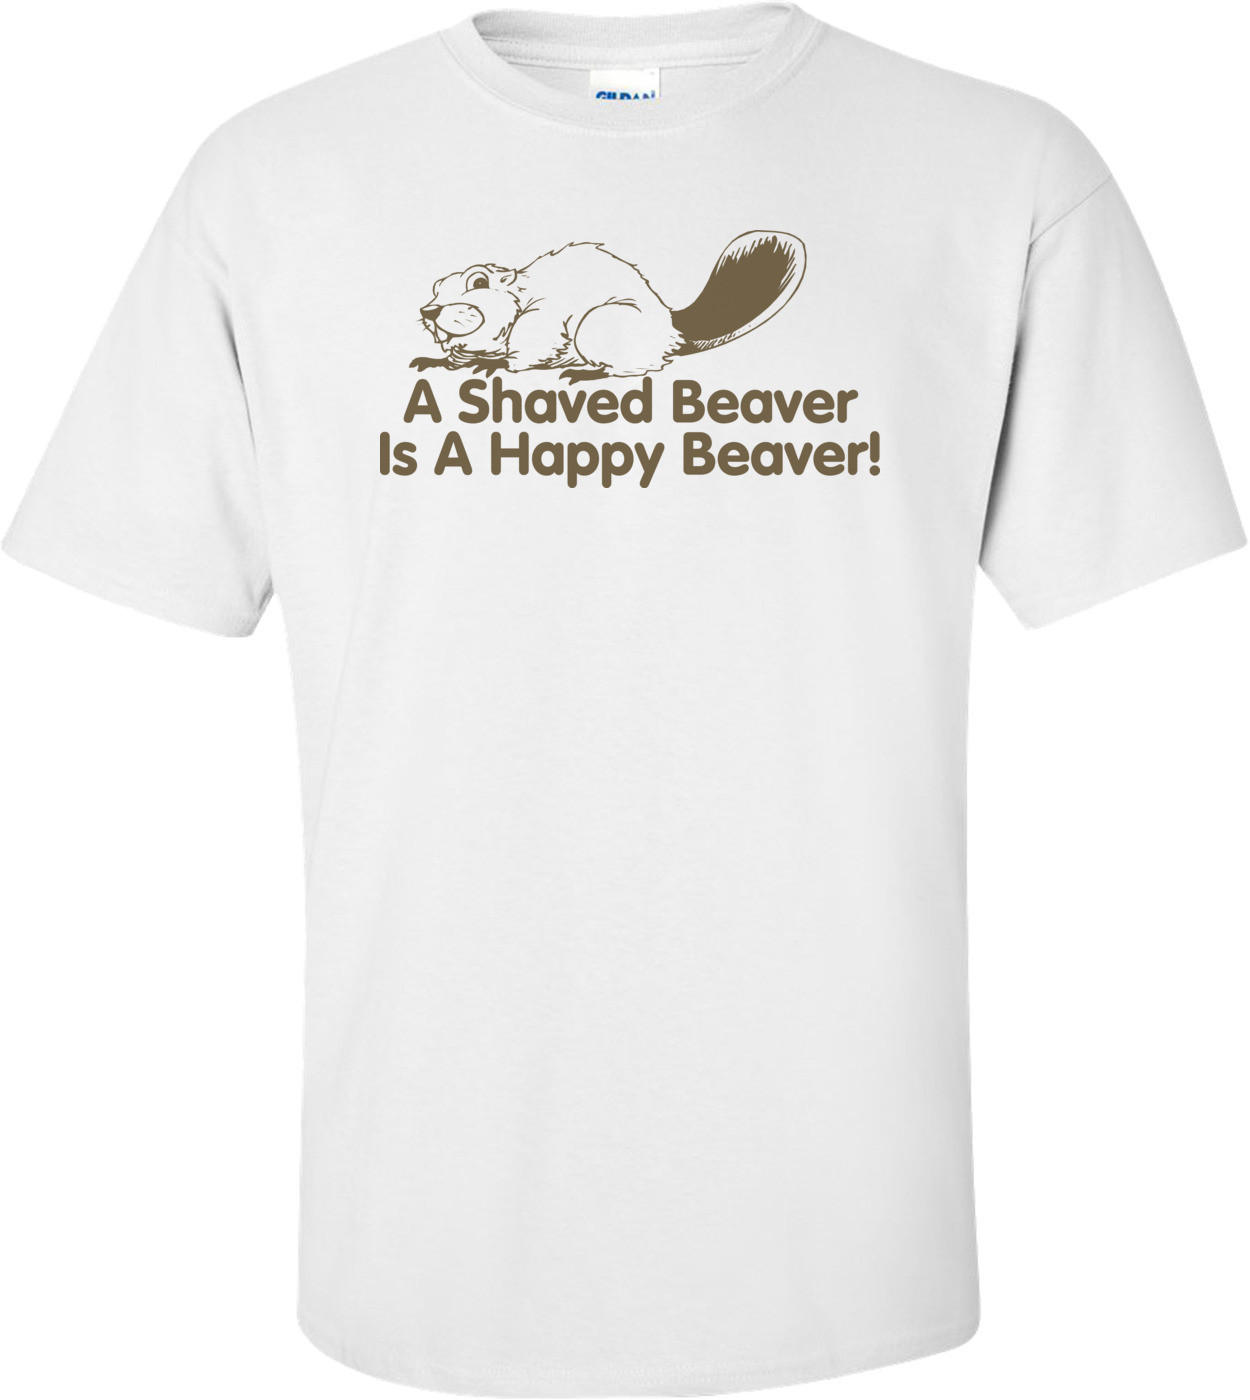 A Shaved Beaver Is A Happy Beaver